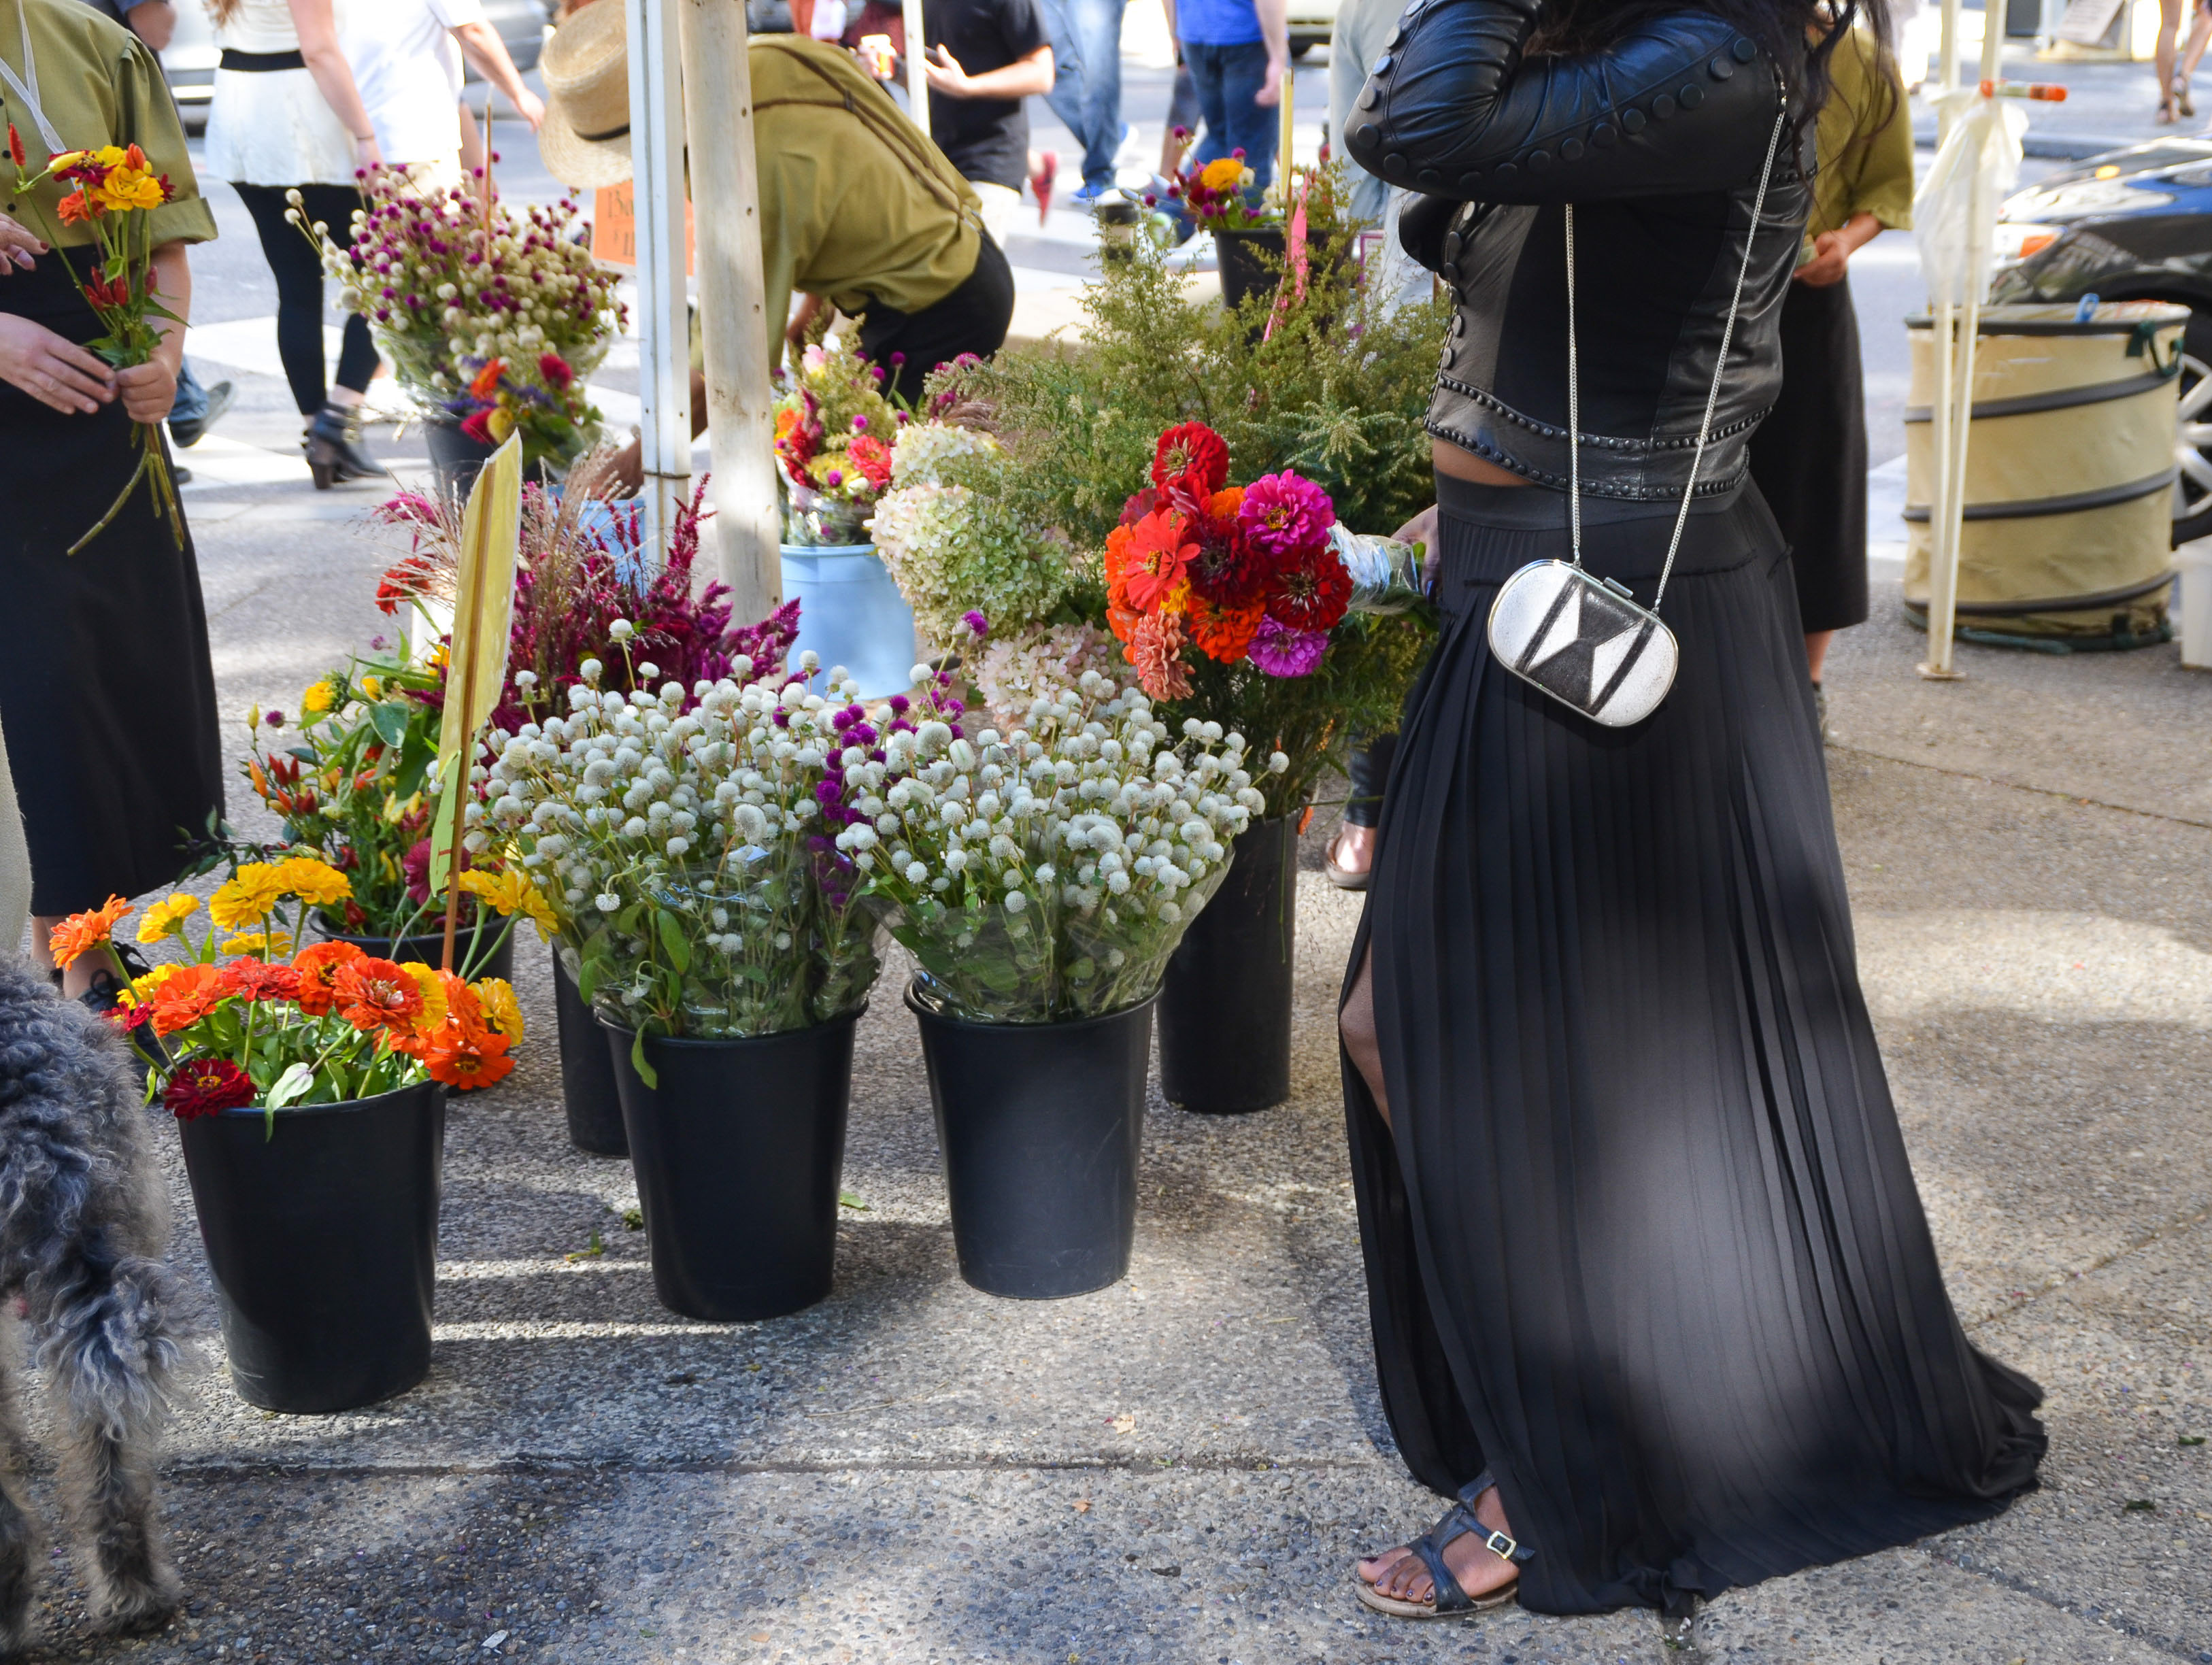 Amish Farmer's Market - Rittenhouse Square | StyleChile | Life, Styled